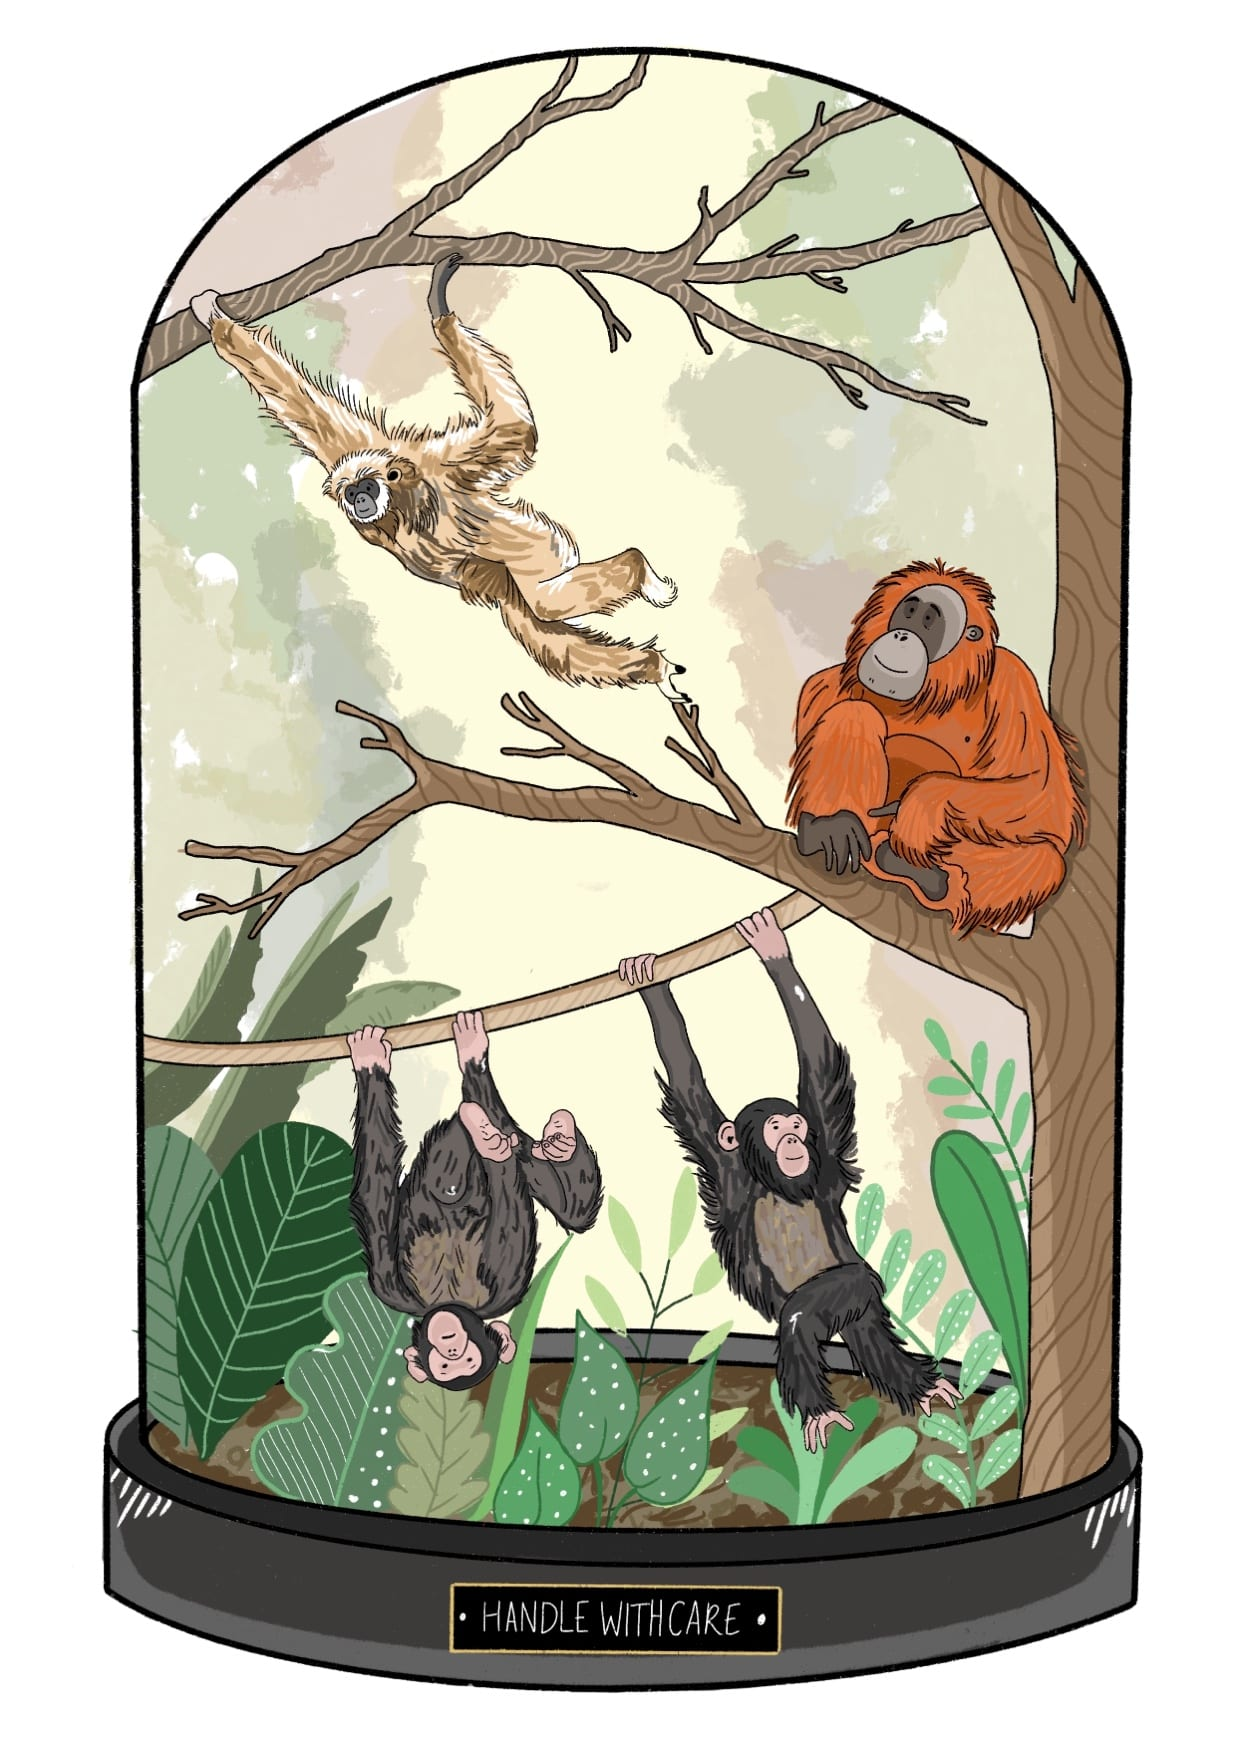 An image reflecting the need to protect the rainforests.